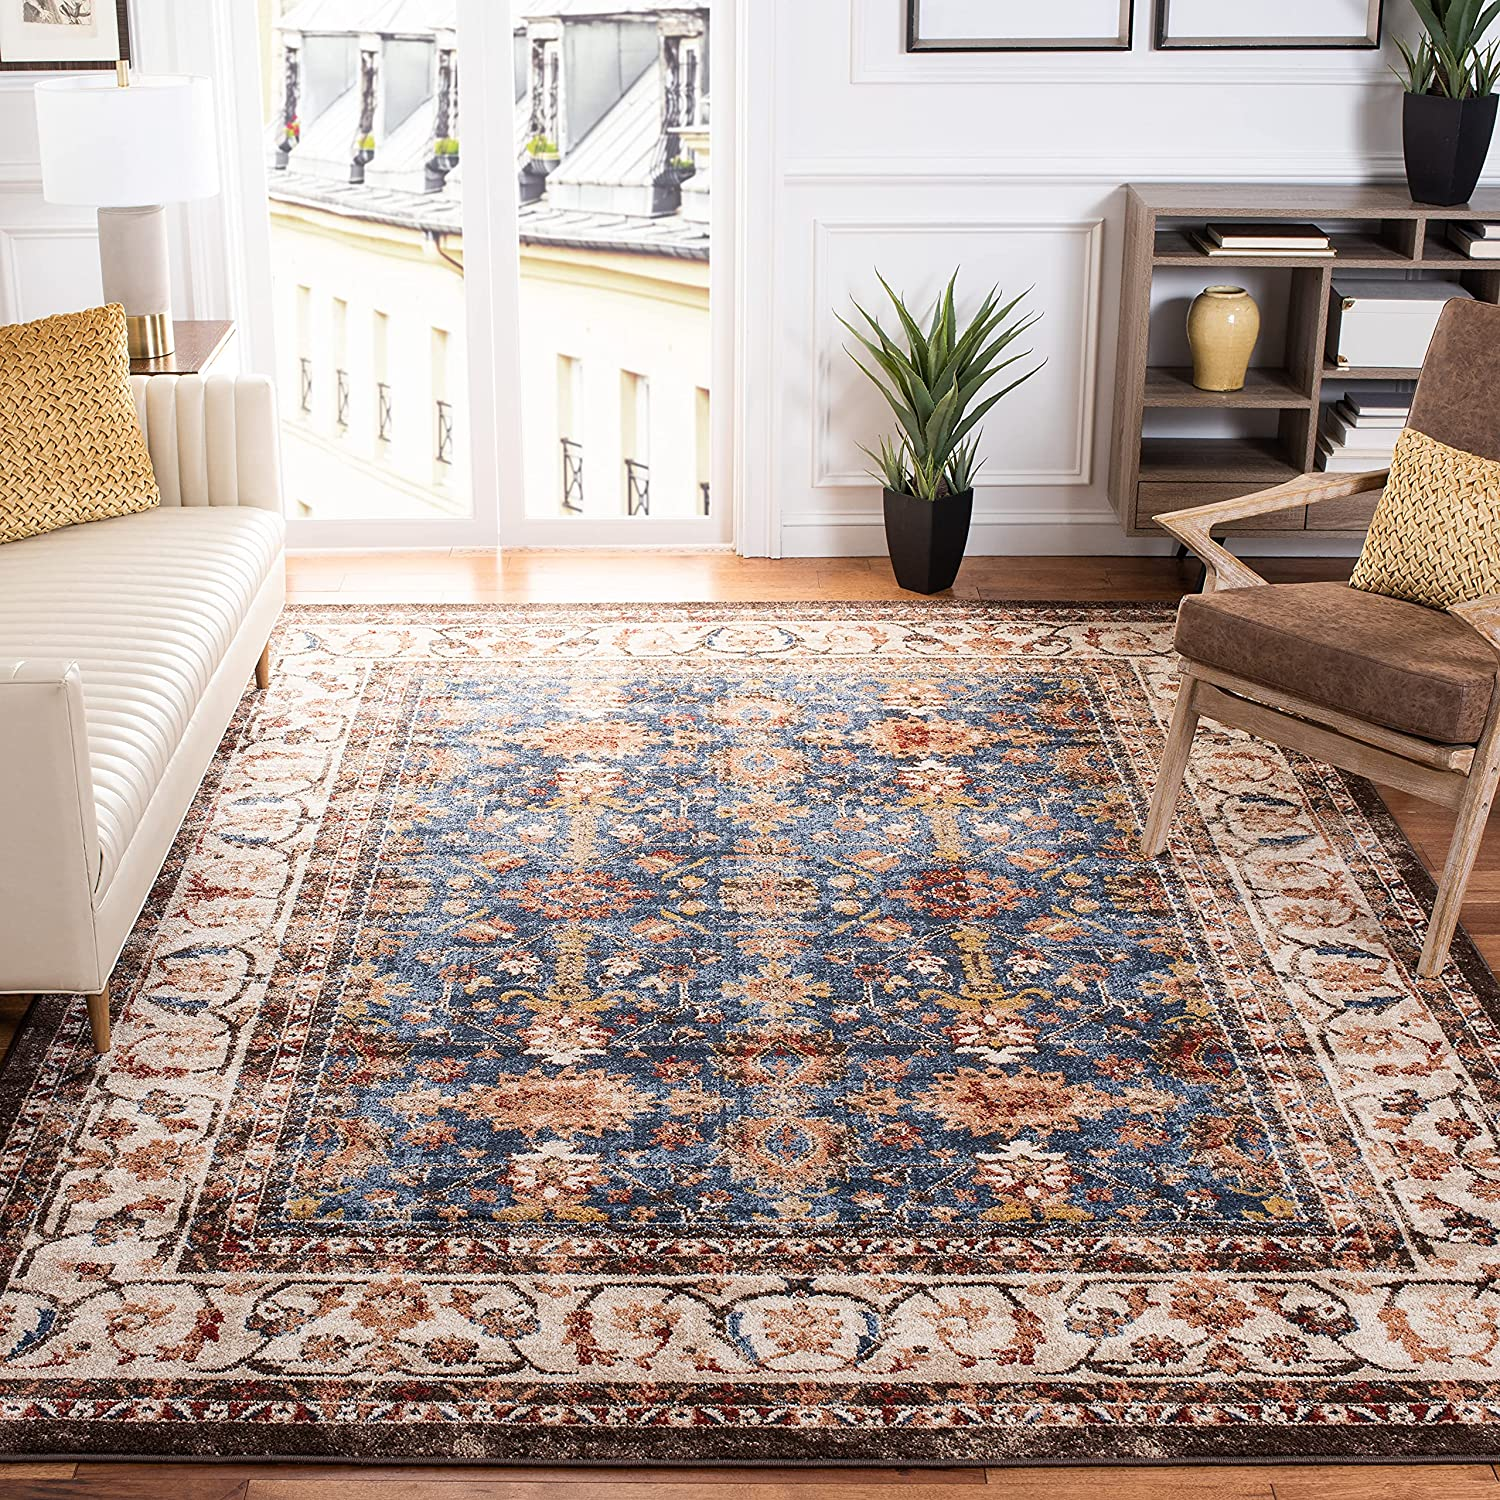 Safavieh Bijar Collection BIJ650B Traditional Oriental Distressed Non-Shedding Stain Resistant Living Room Bedroom Area Rug, 8' x 10', Royal / Ivory